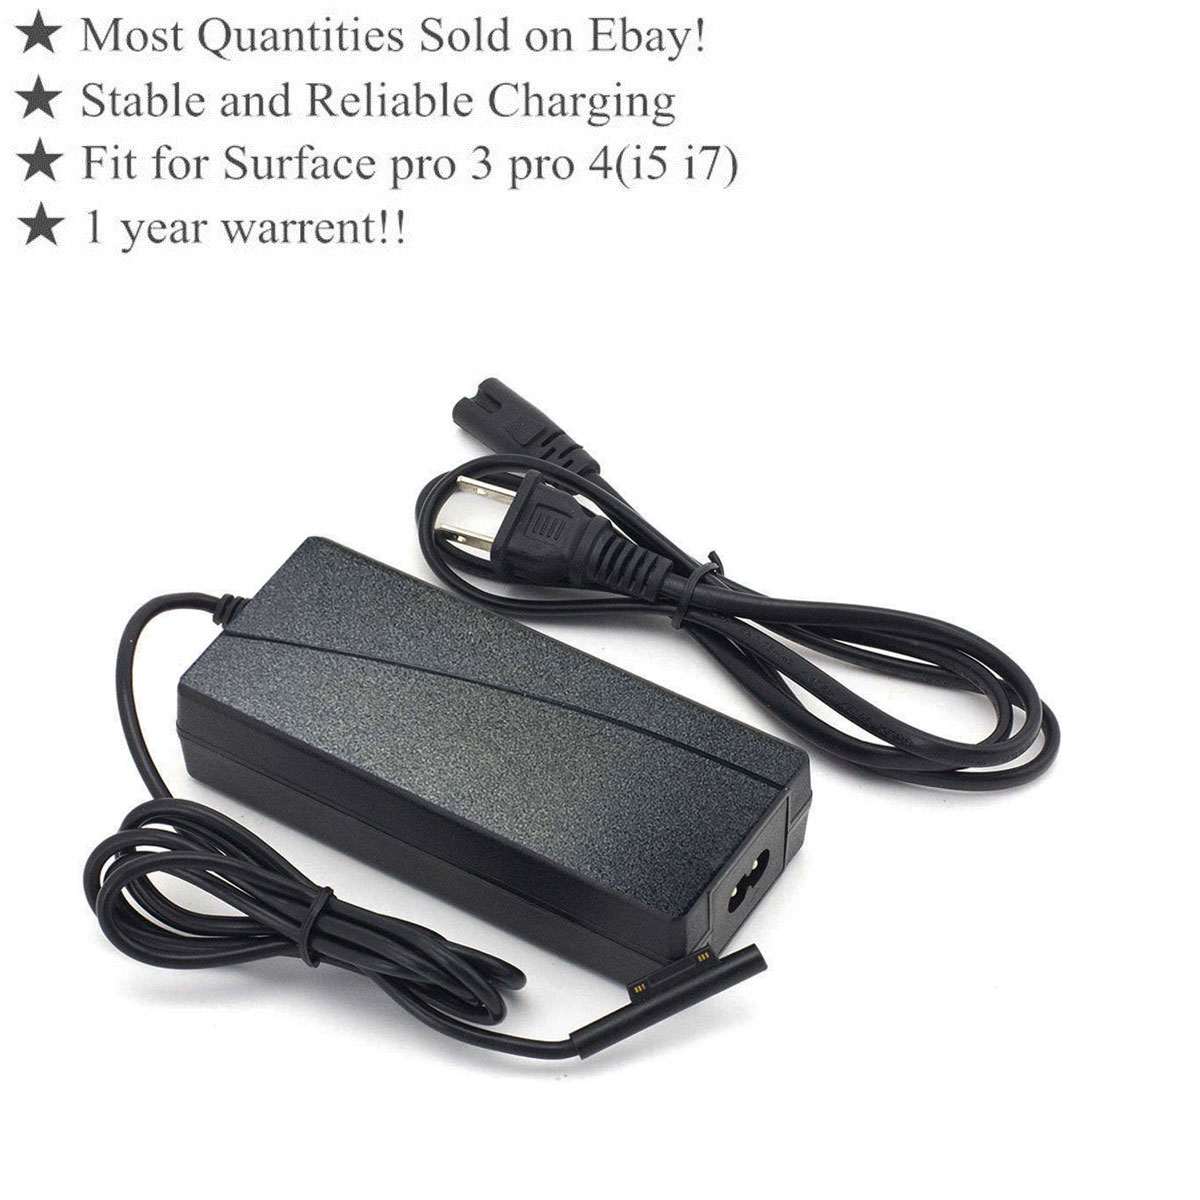 Details about NEW AC Wall Power Charger Adapter For Microsoft Surface Pro  4/Pro3